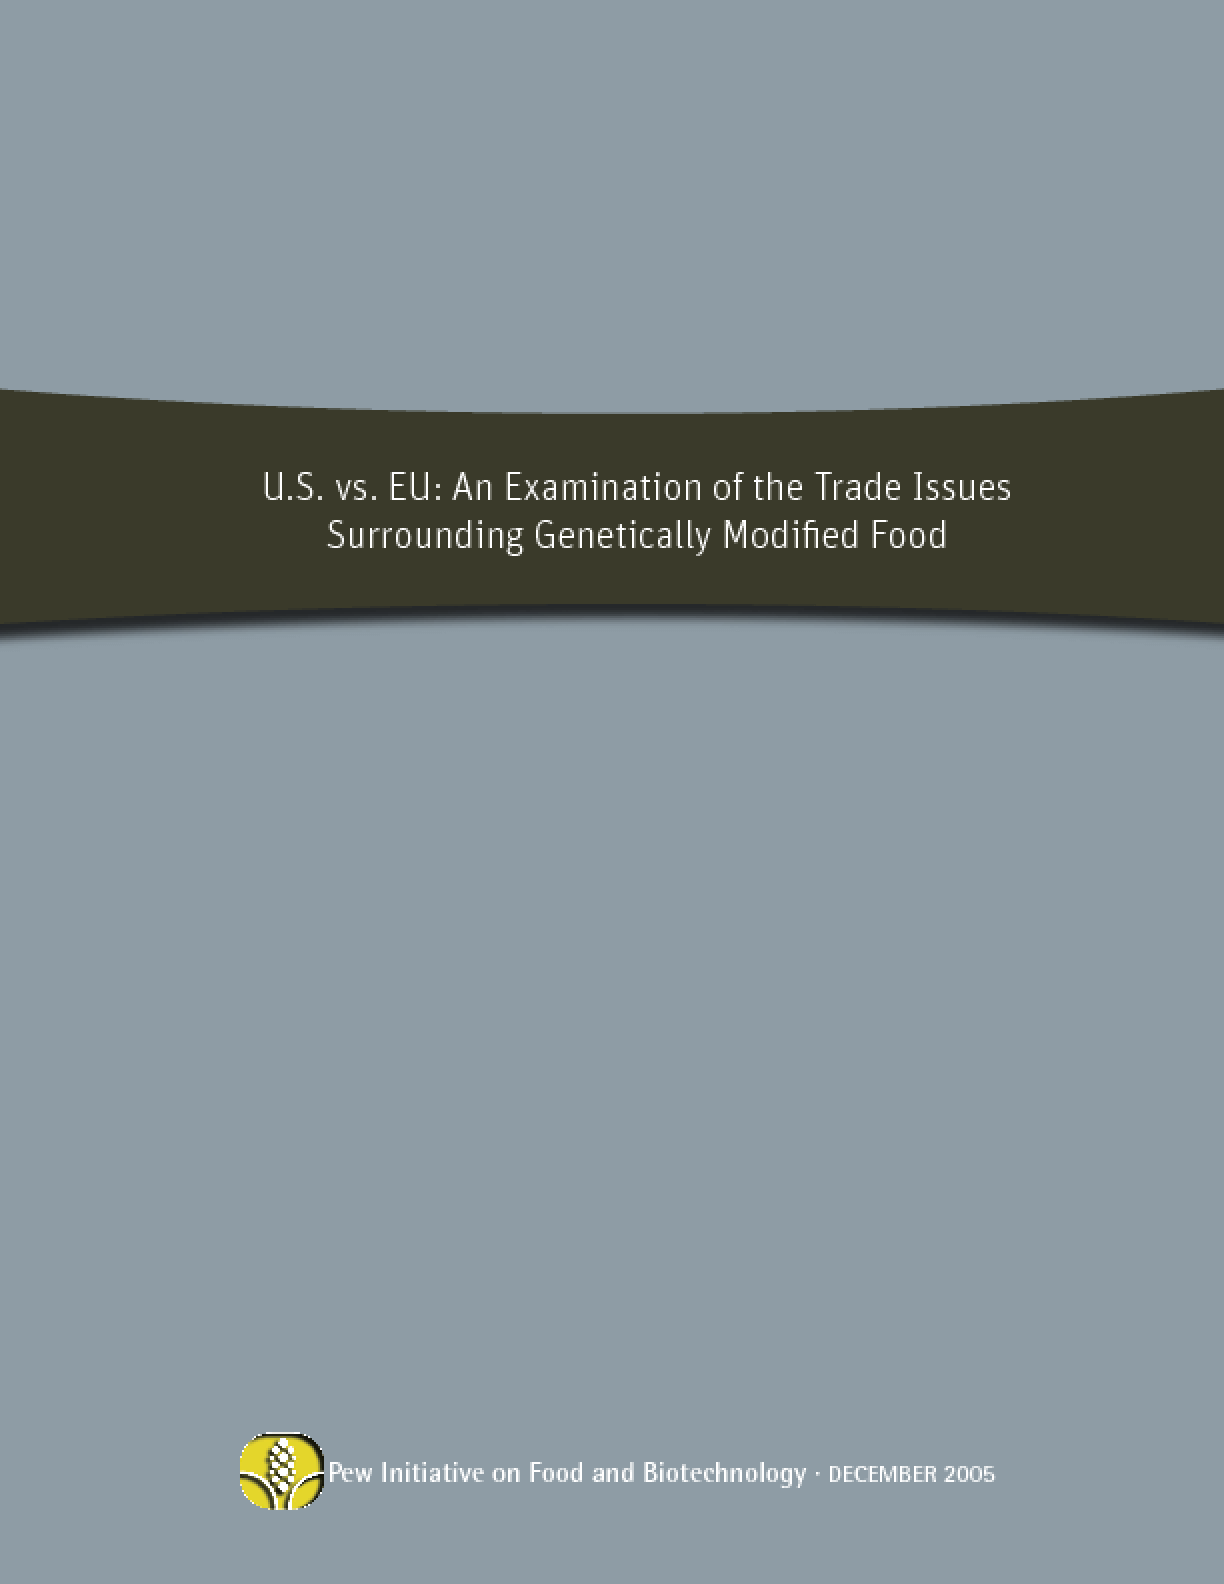 U.S. vs. EU: An Examination of the Trade Issues Surrounding Genetically Modified Food